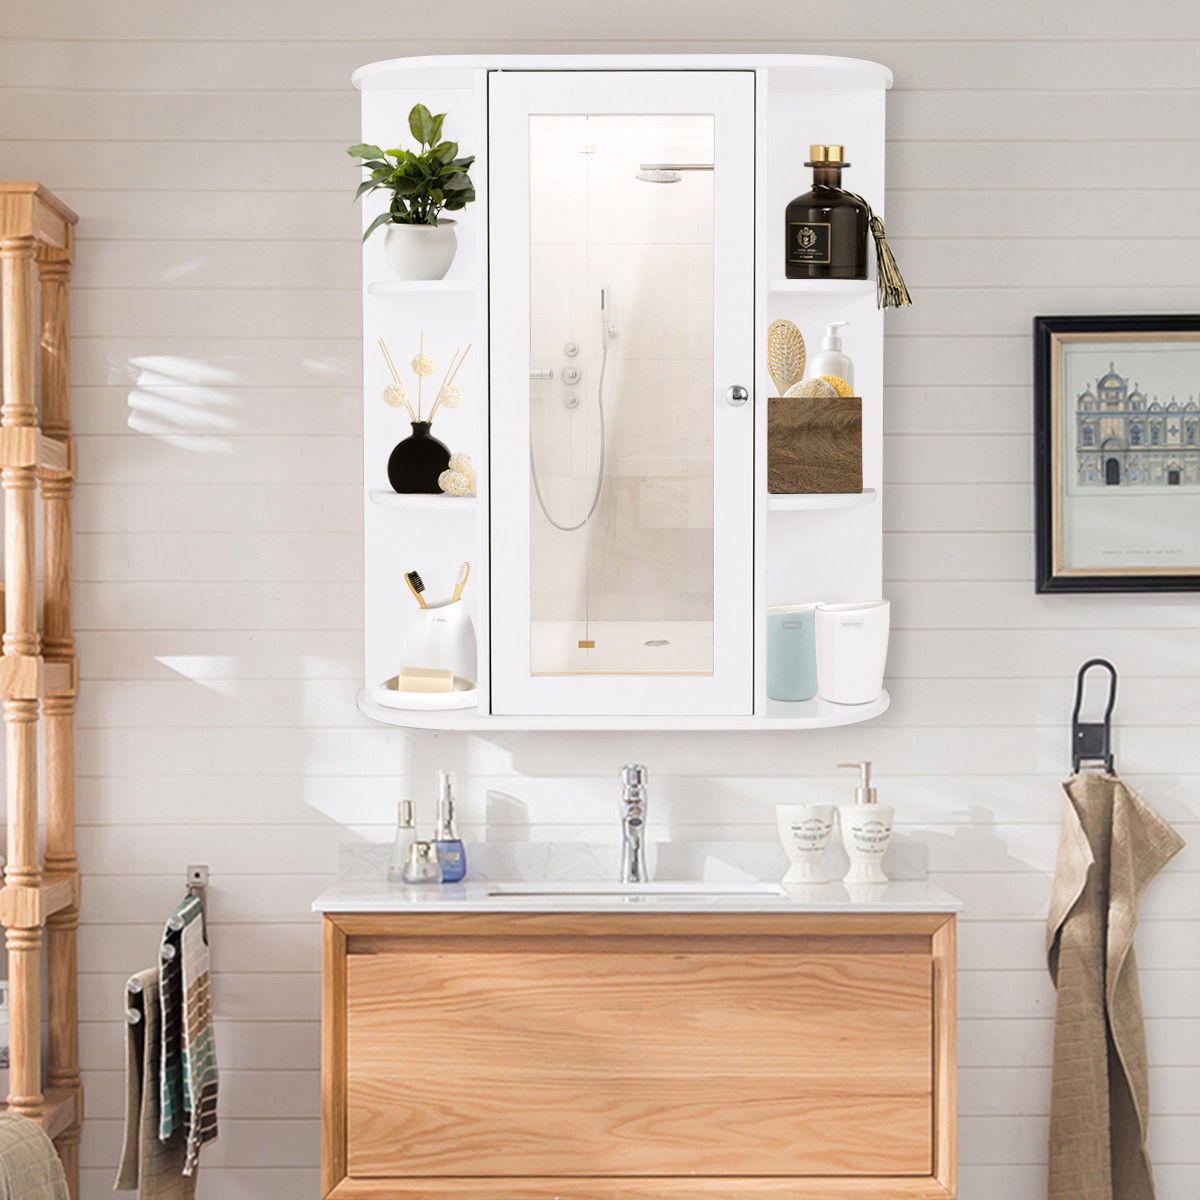 Gymax Bathroom Cabinet Single Door Shelves Wall Mount Cabinet W/ Mirror Organizer